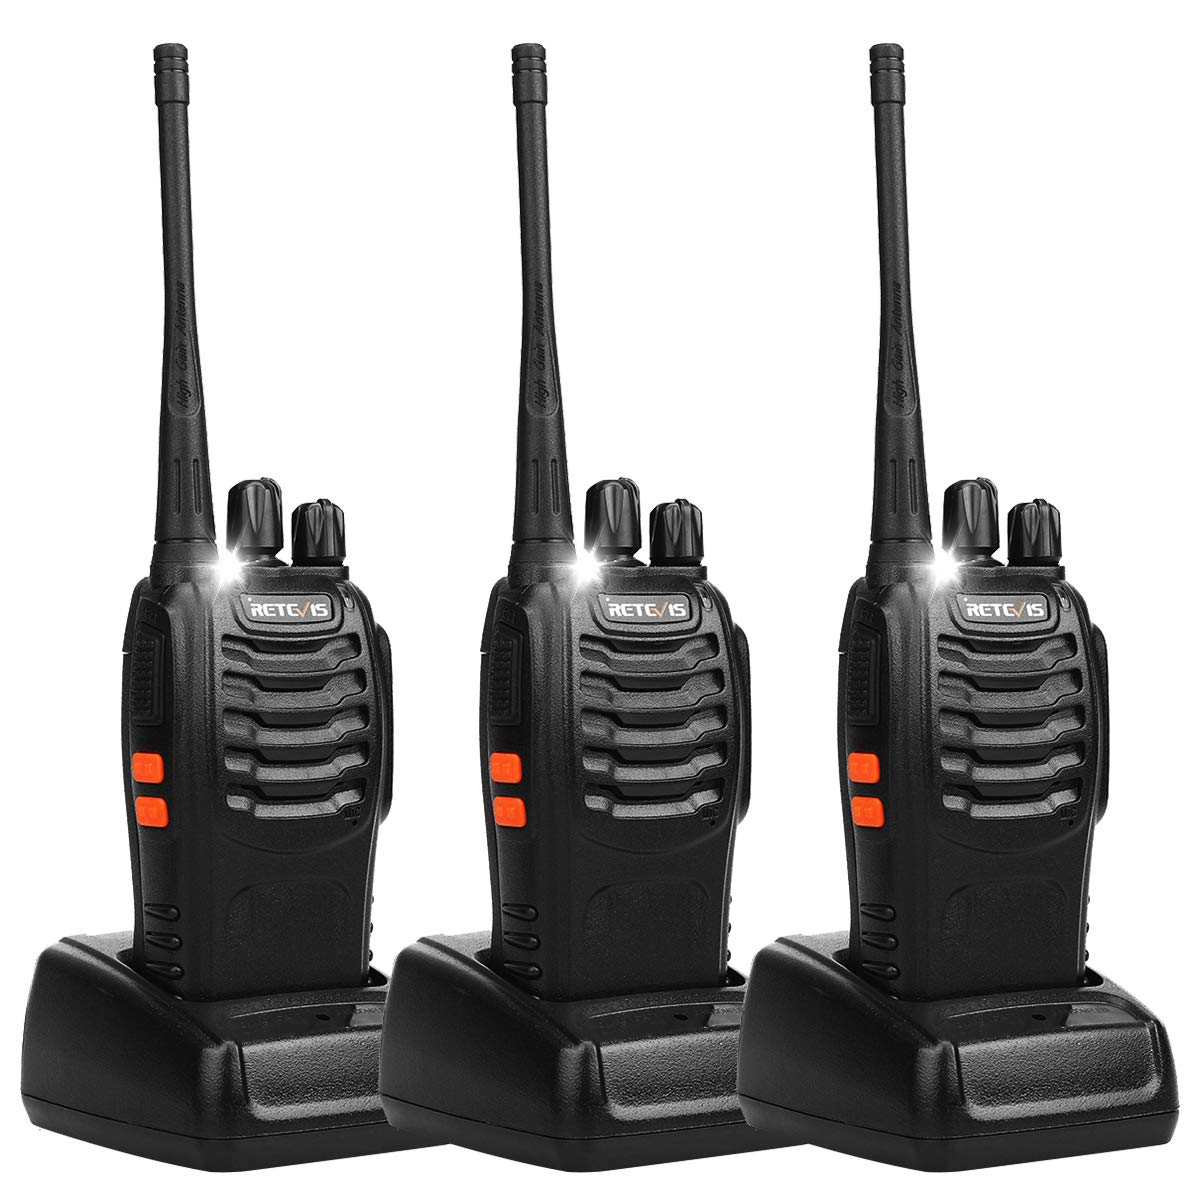 Retevis H-777 Two Way Radios Long Range UHF Rechargeable 16CH CTCSS/DCS Flashlight Walkie Talkies with USB Charger (3 Pack) by Retevis